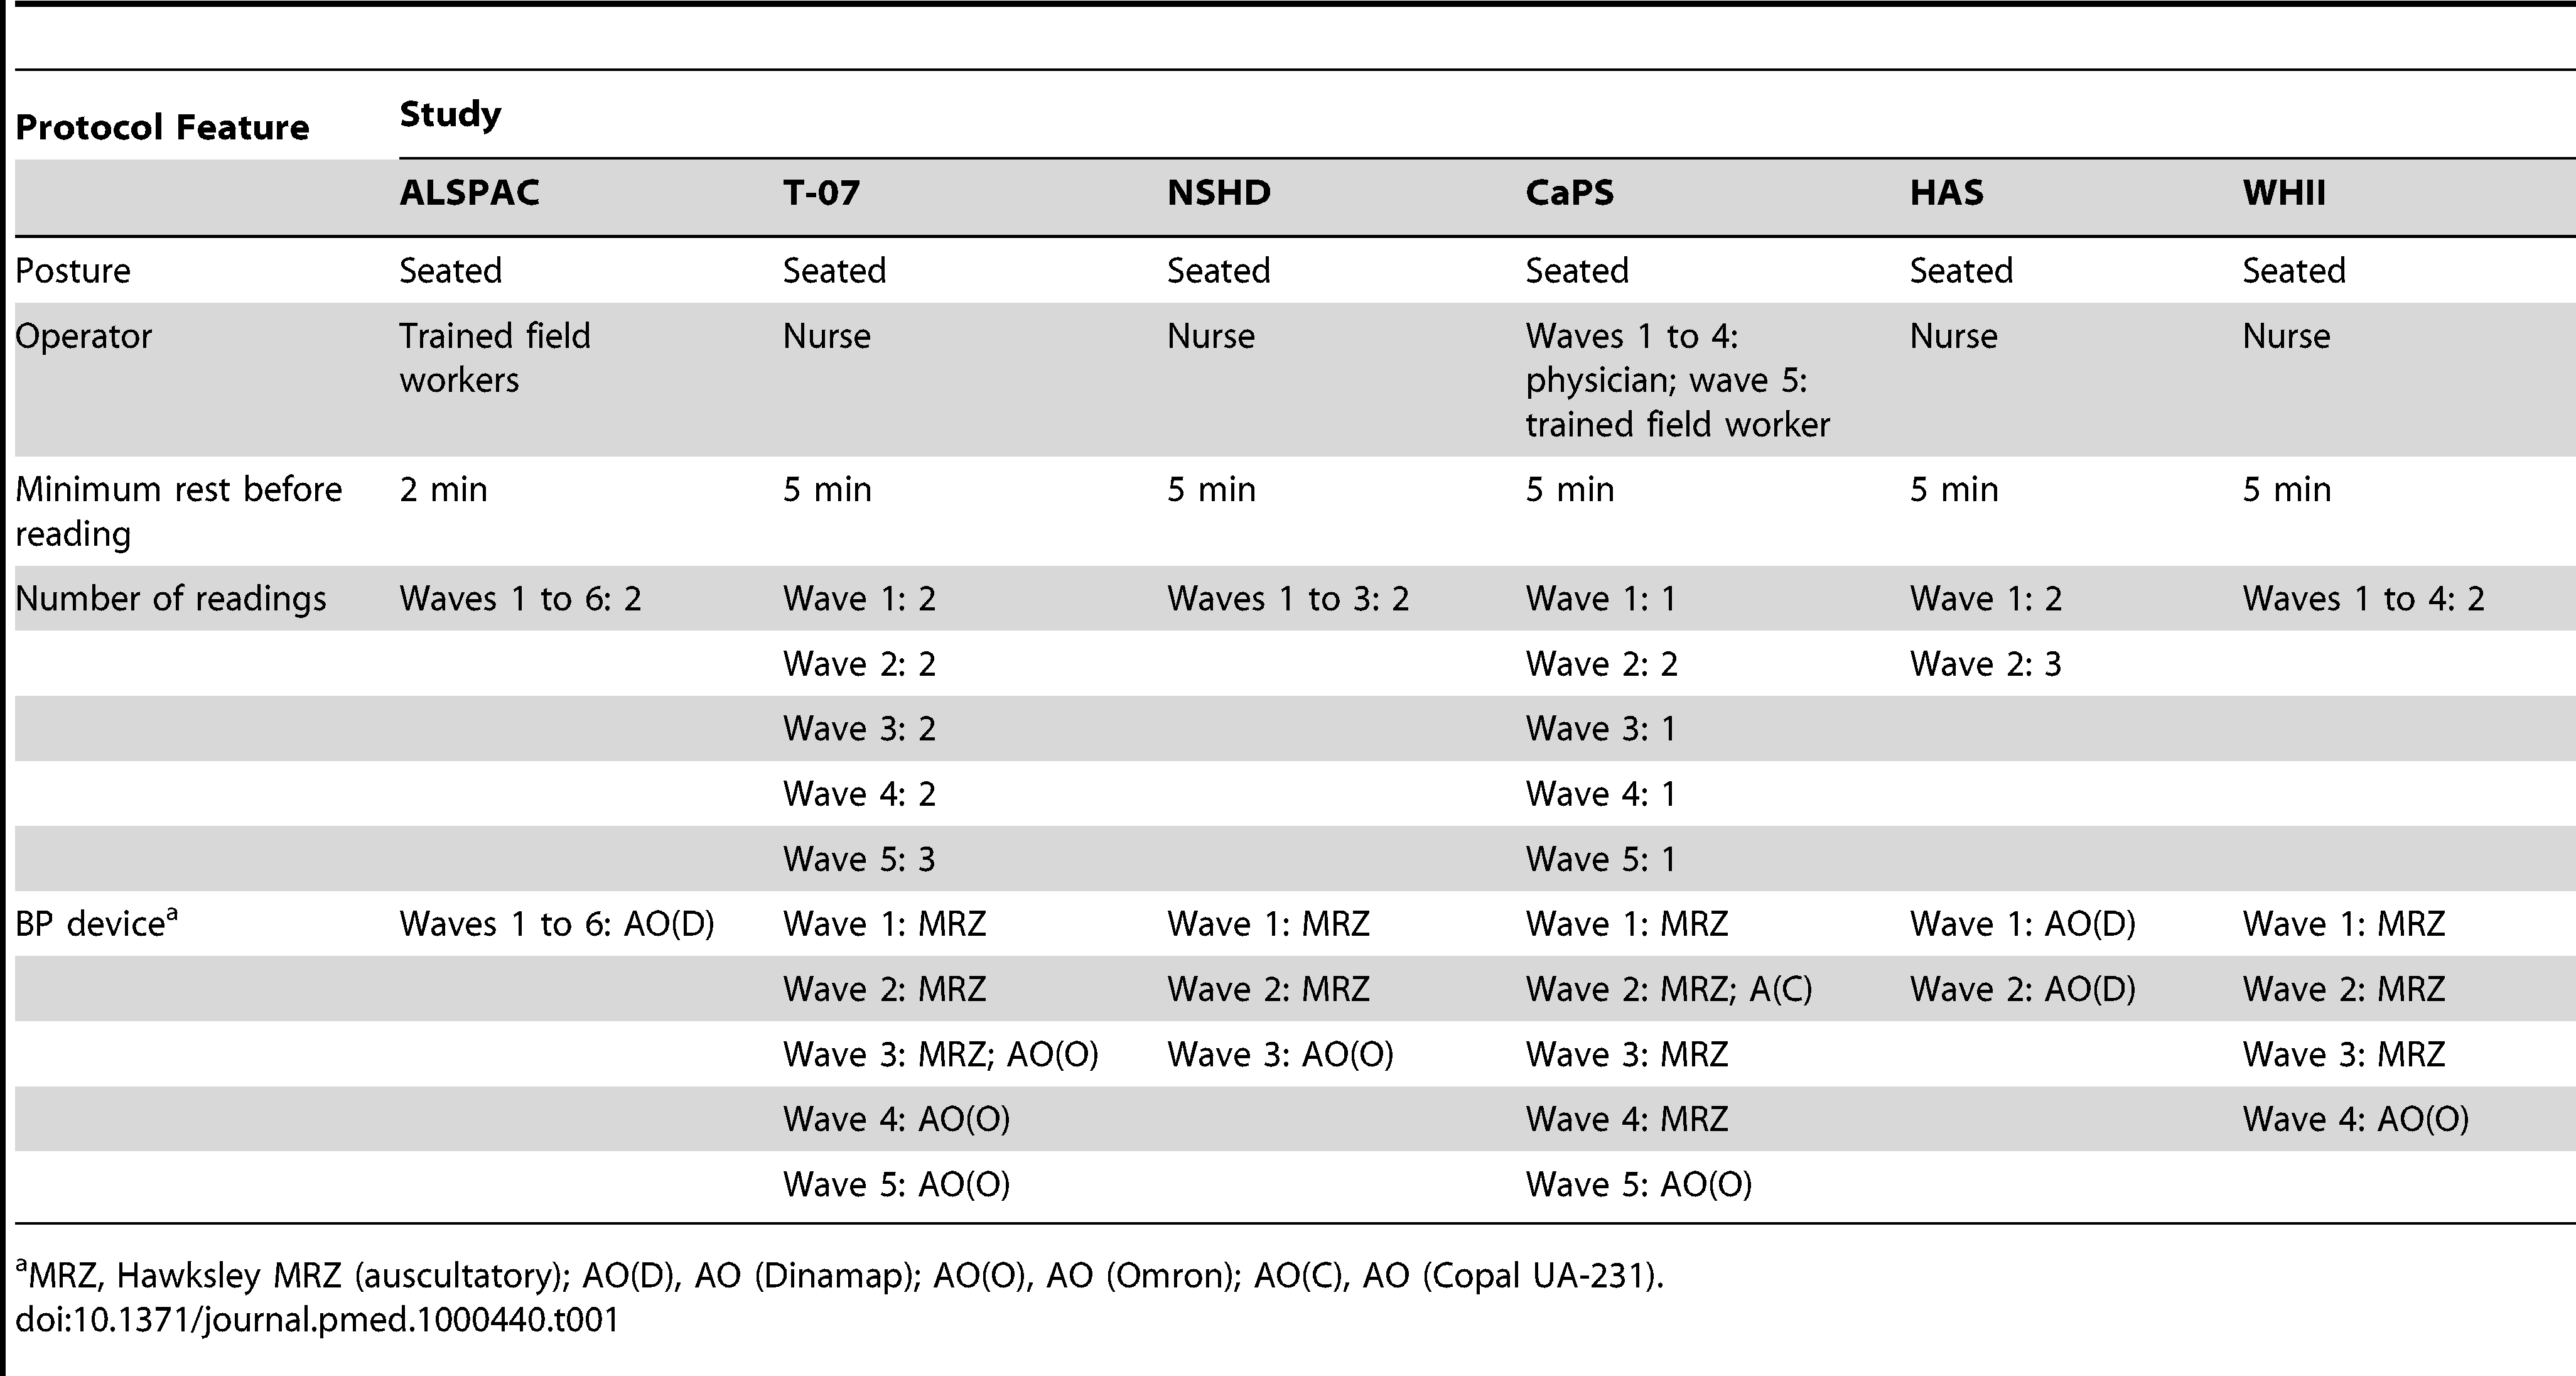 Blood pressure measurement protocols used in each cohort at each wave.